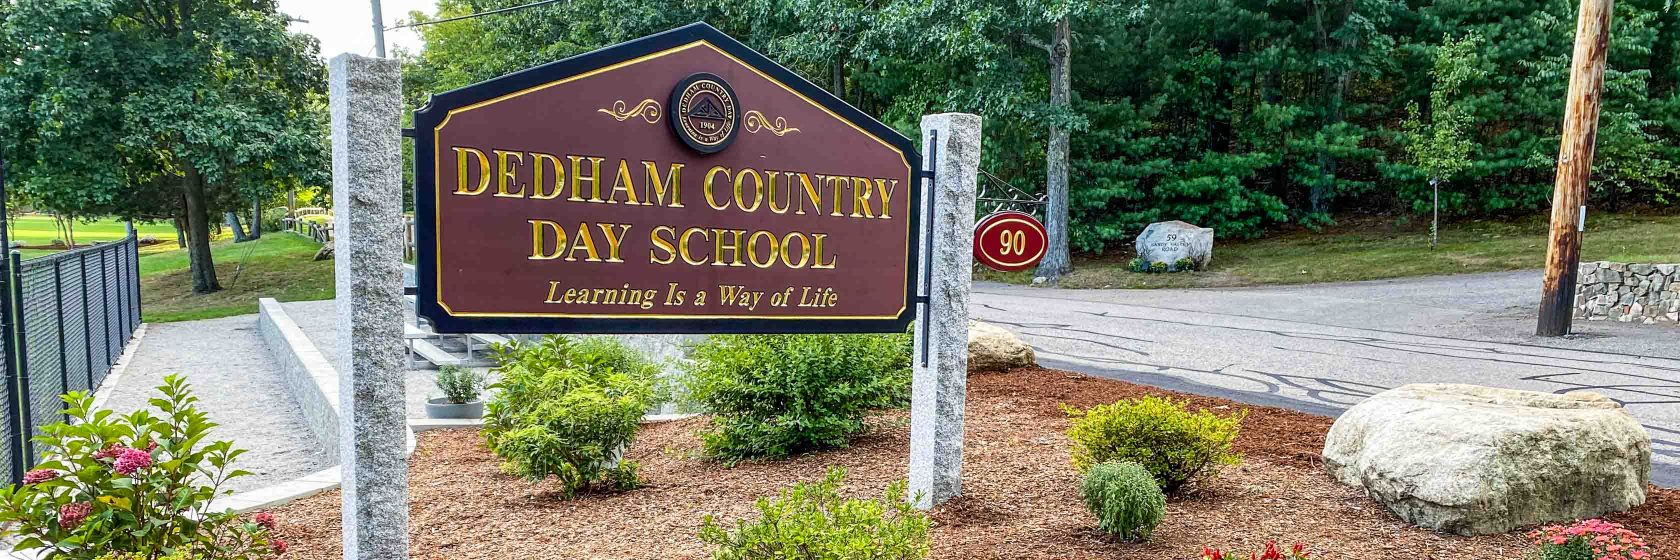 The front sign of Dedham Country Day School.